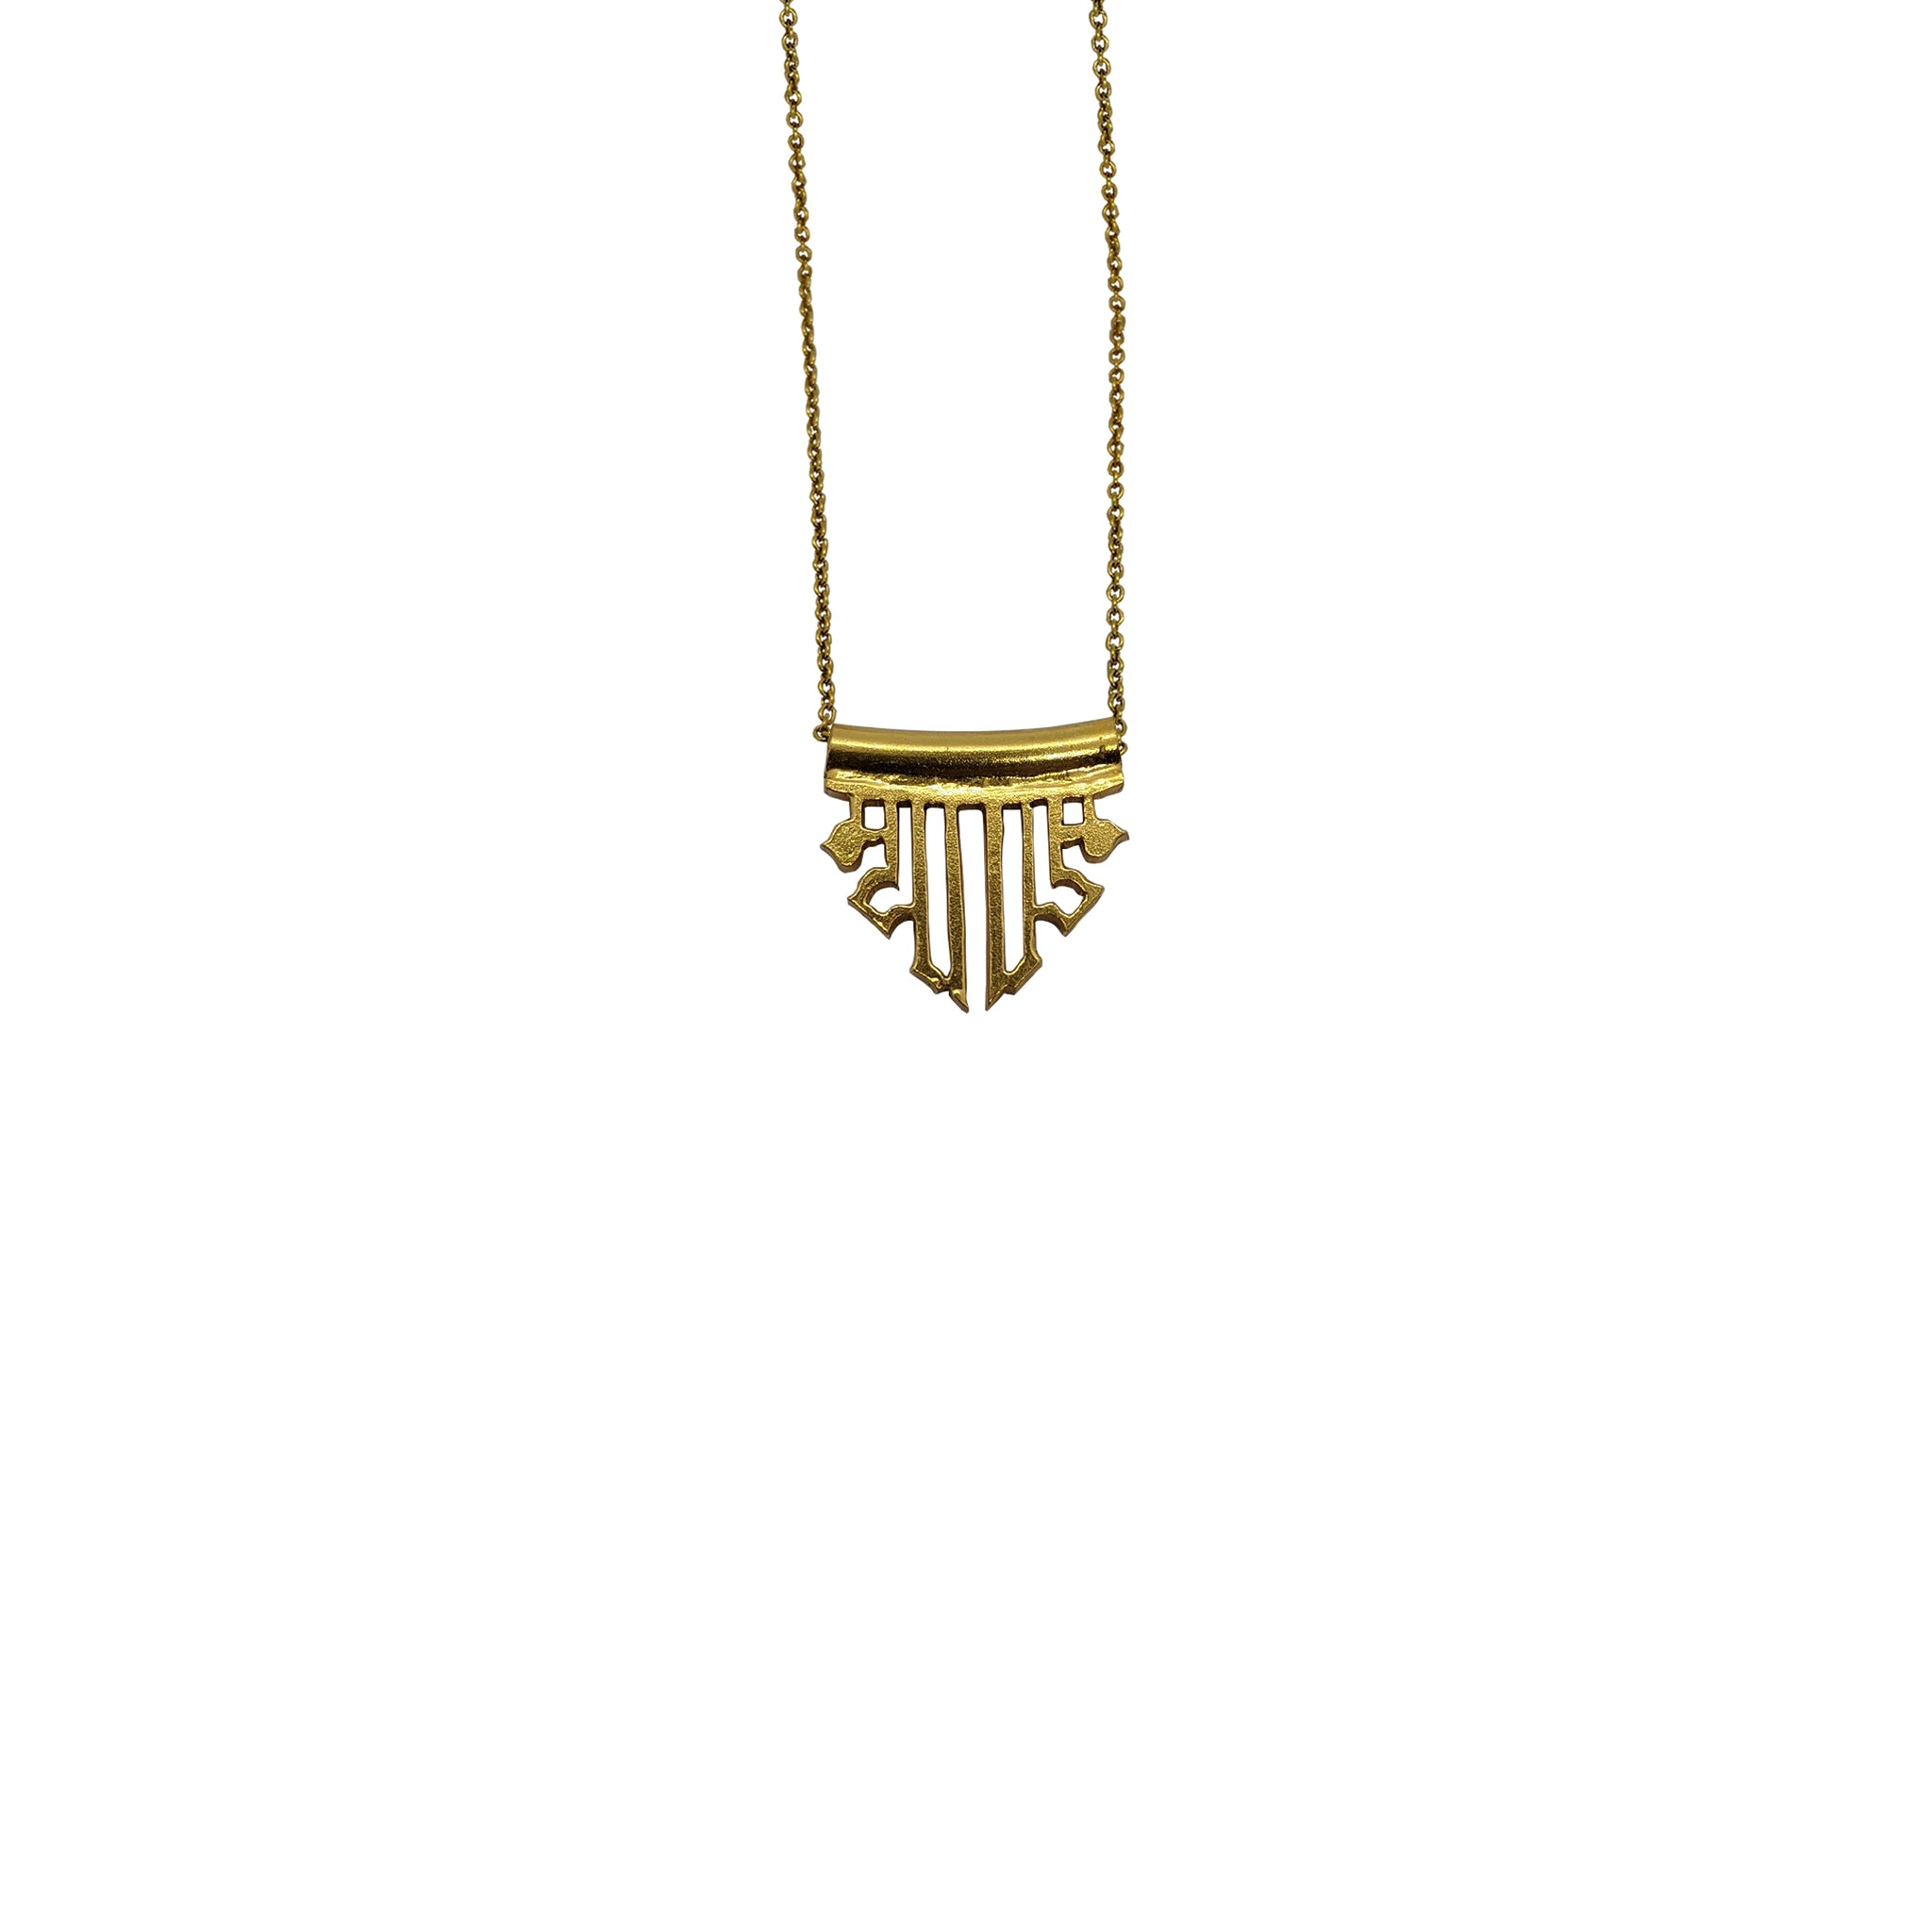 Maya - Small Gold- Plated Necklace